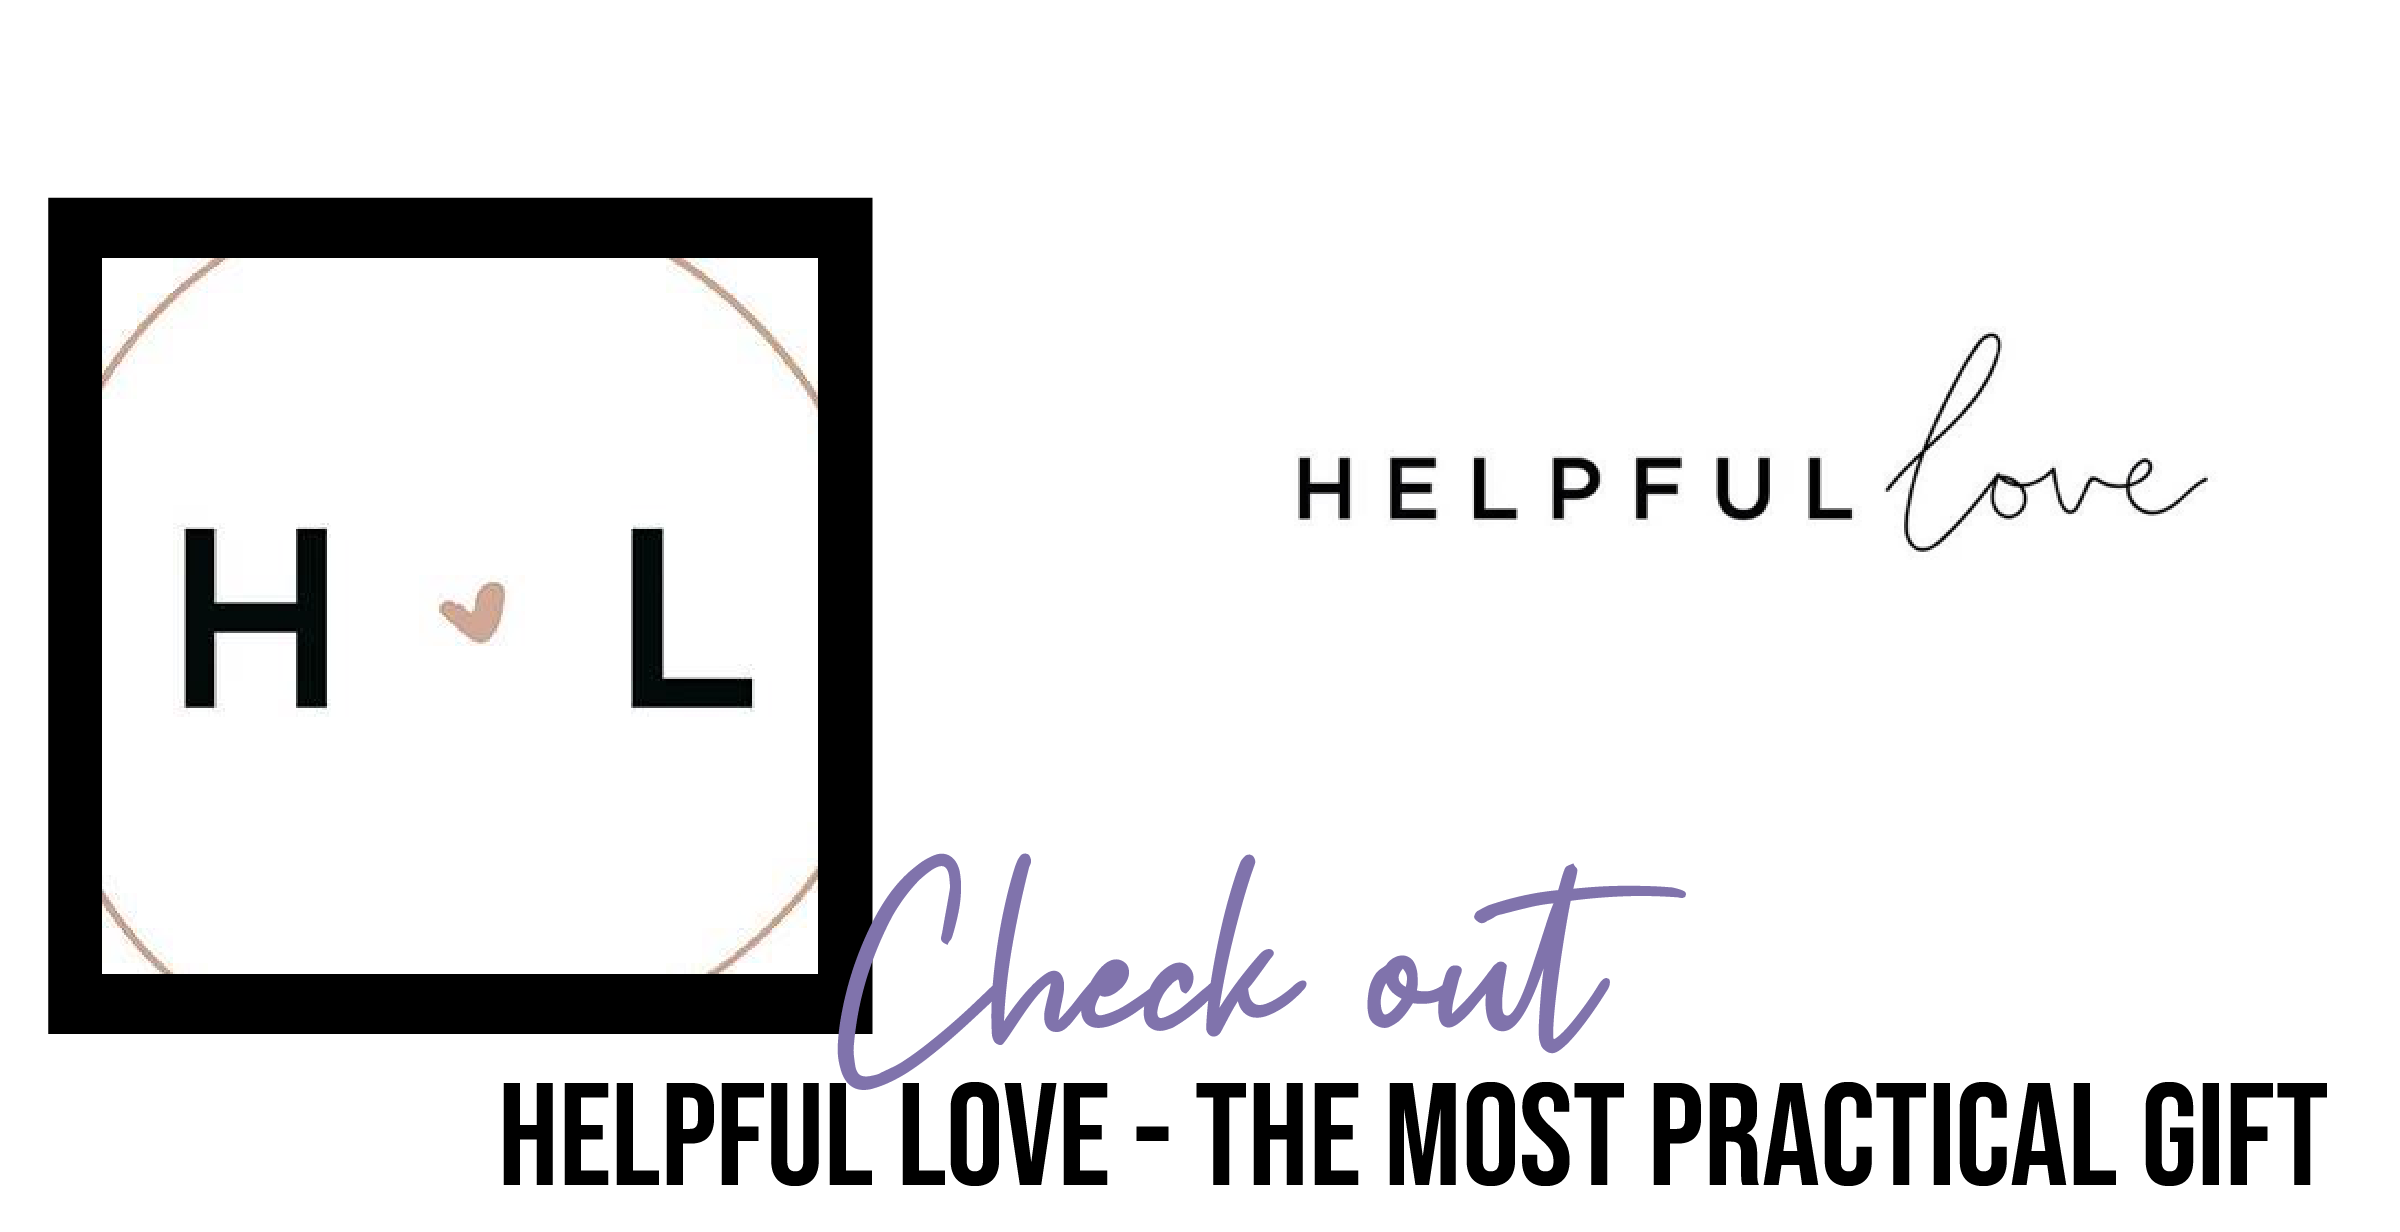 Check out HELPFUL LOVE - THE MOST PRACTICAL GIFT